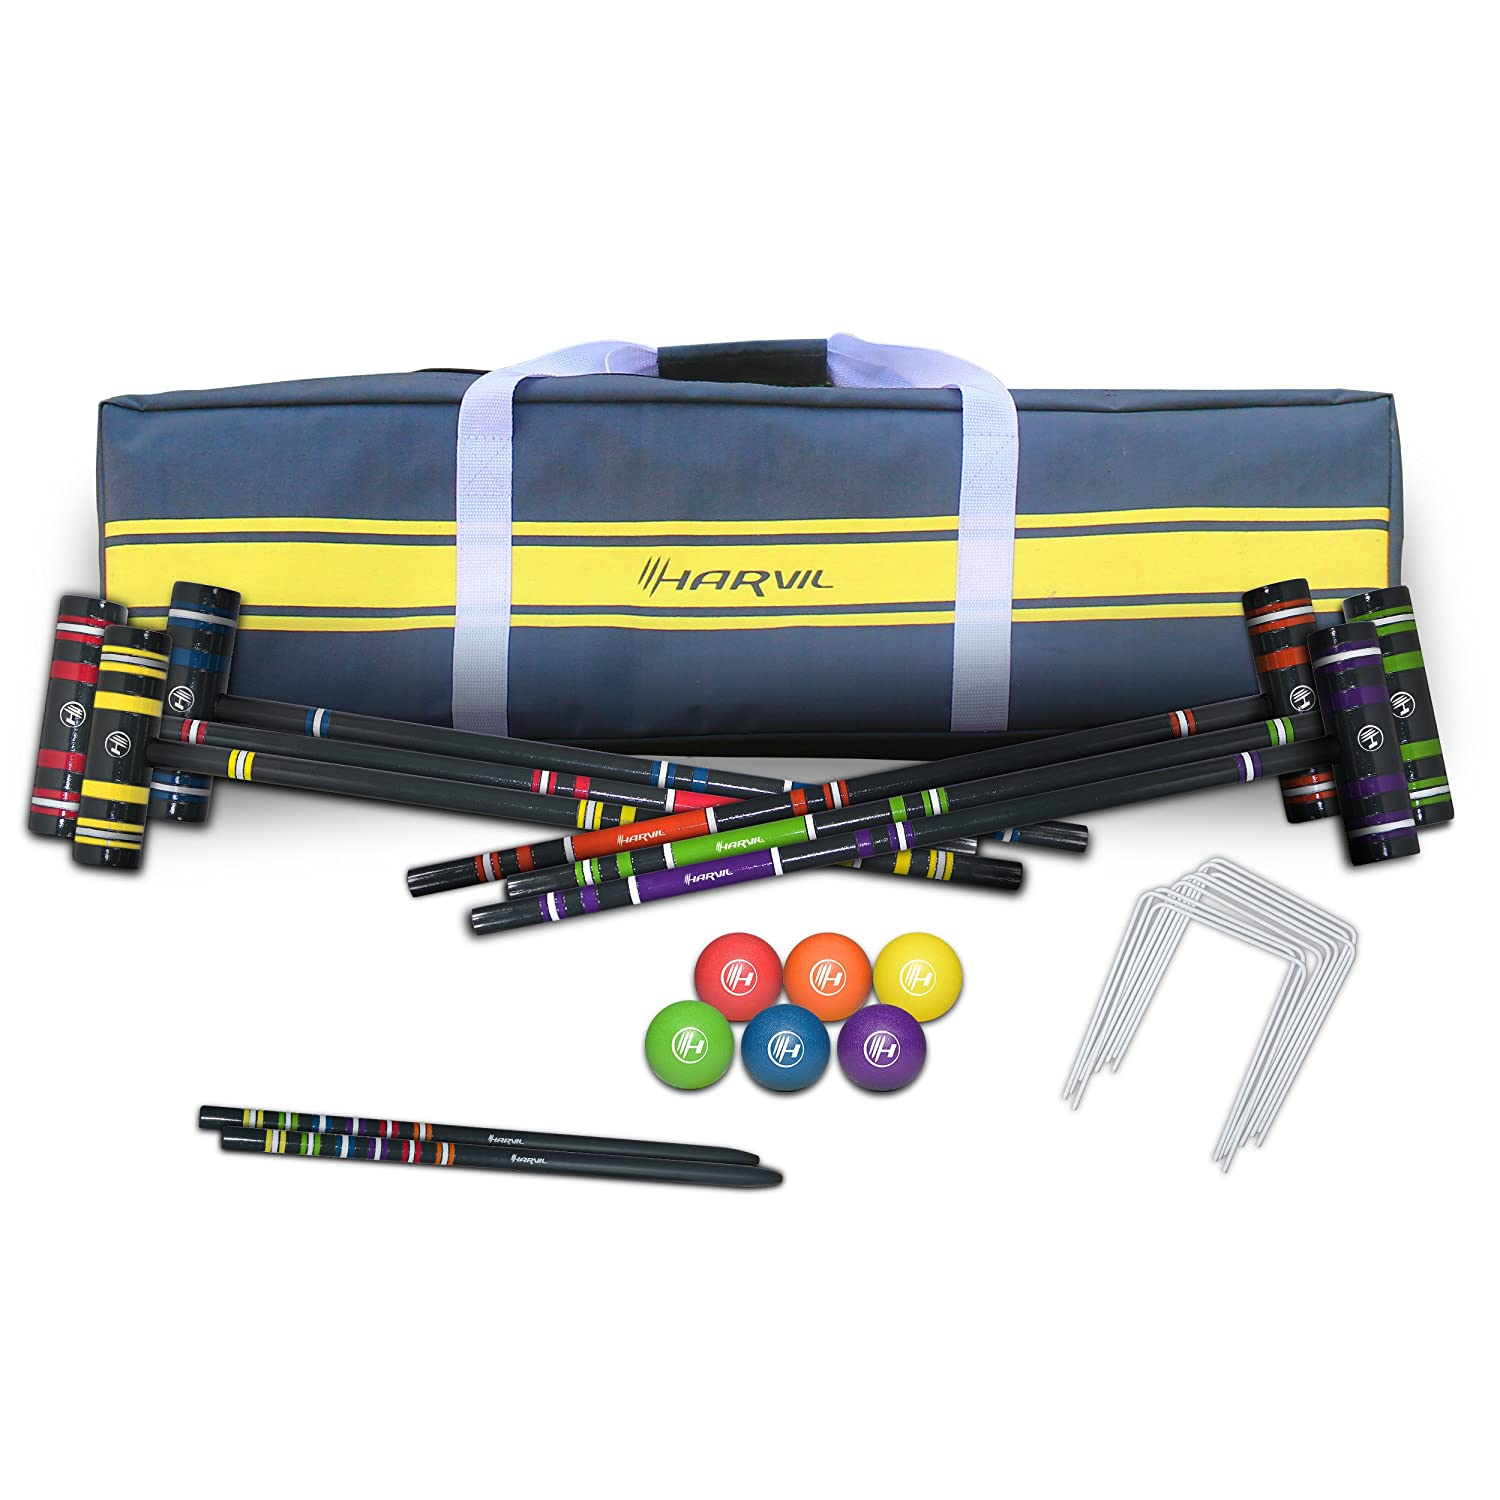 Harvil Complete six-player Croquet Set with Mallets、ボール、Stake支柱、Wickets and Carryingケース B0787C4NF4